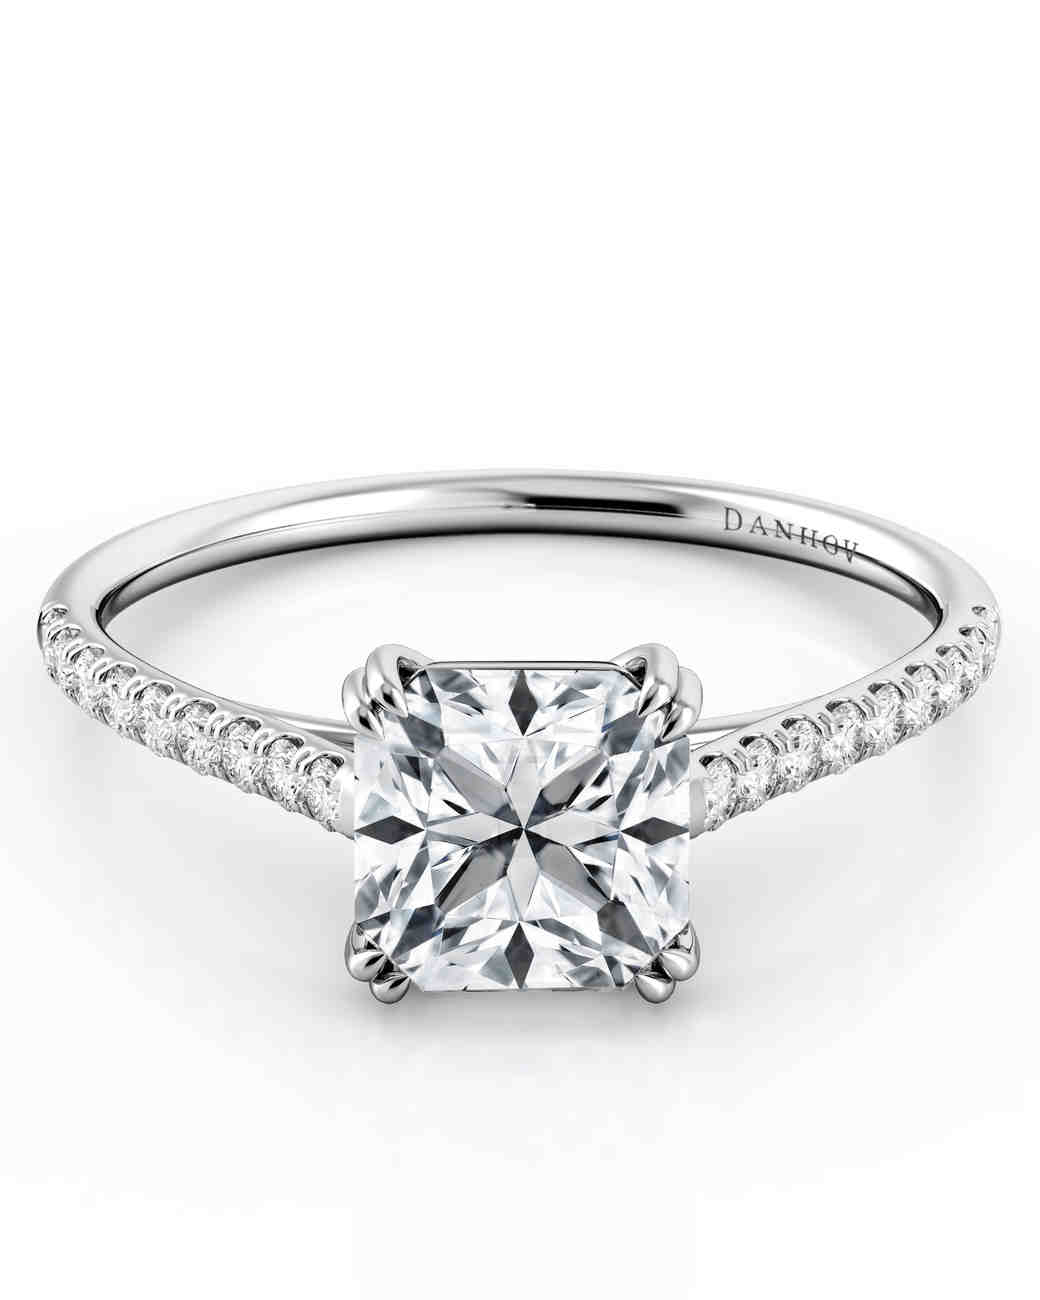 Danhov Classico asscher-cut solitaire diamond in 18k white gold with diamond shank engagement ring